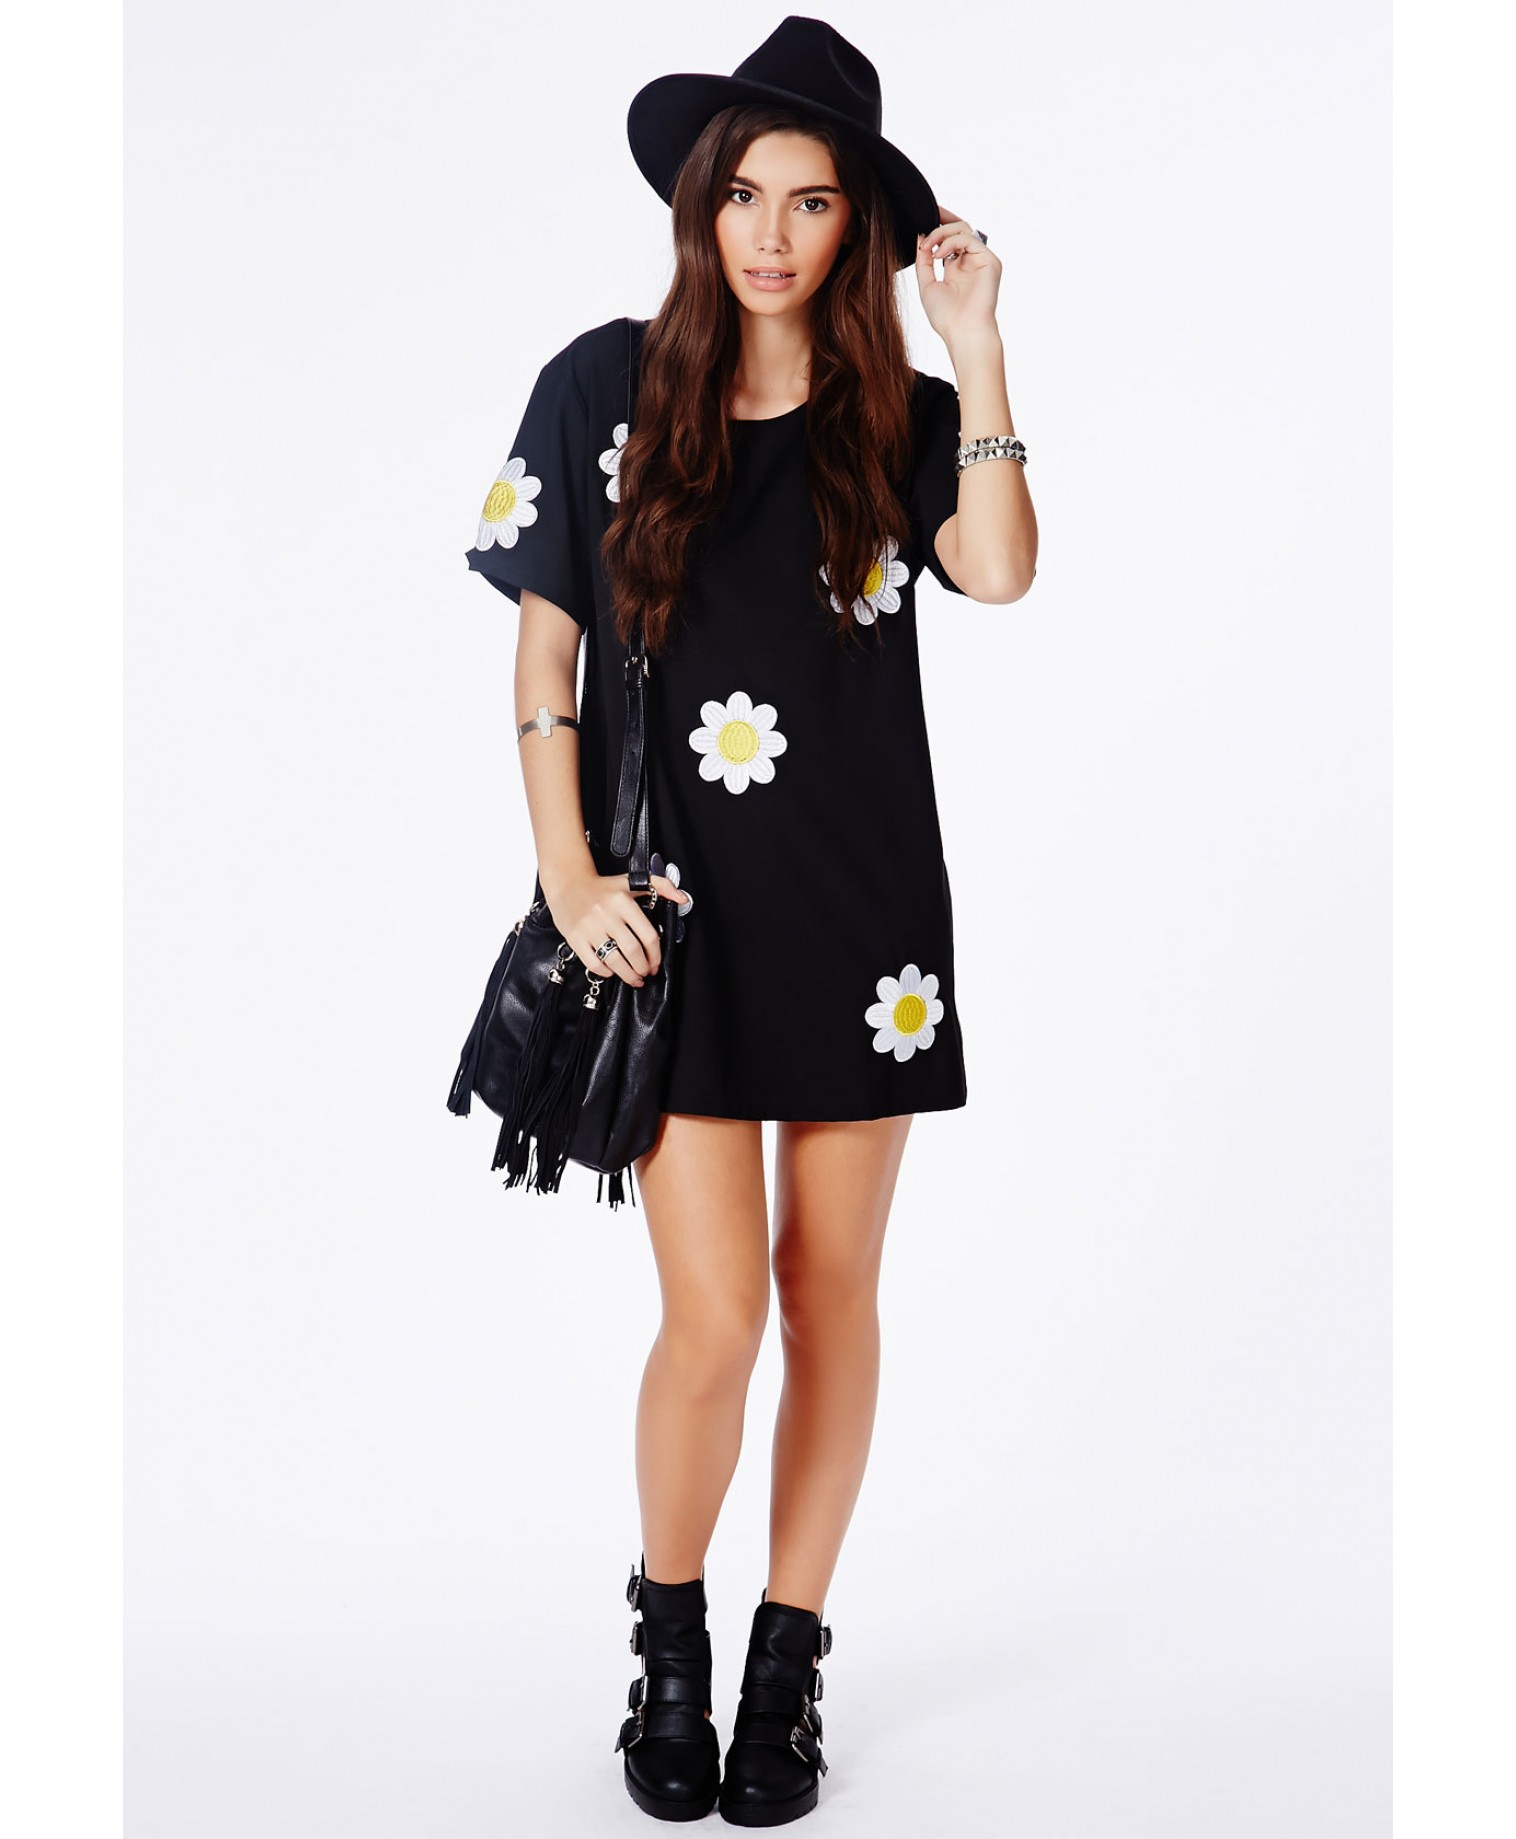 0557ebaa4d Calanta black oversized daisy shift dress - fast shop